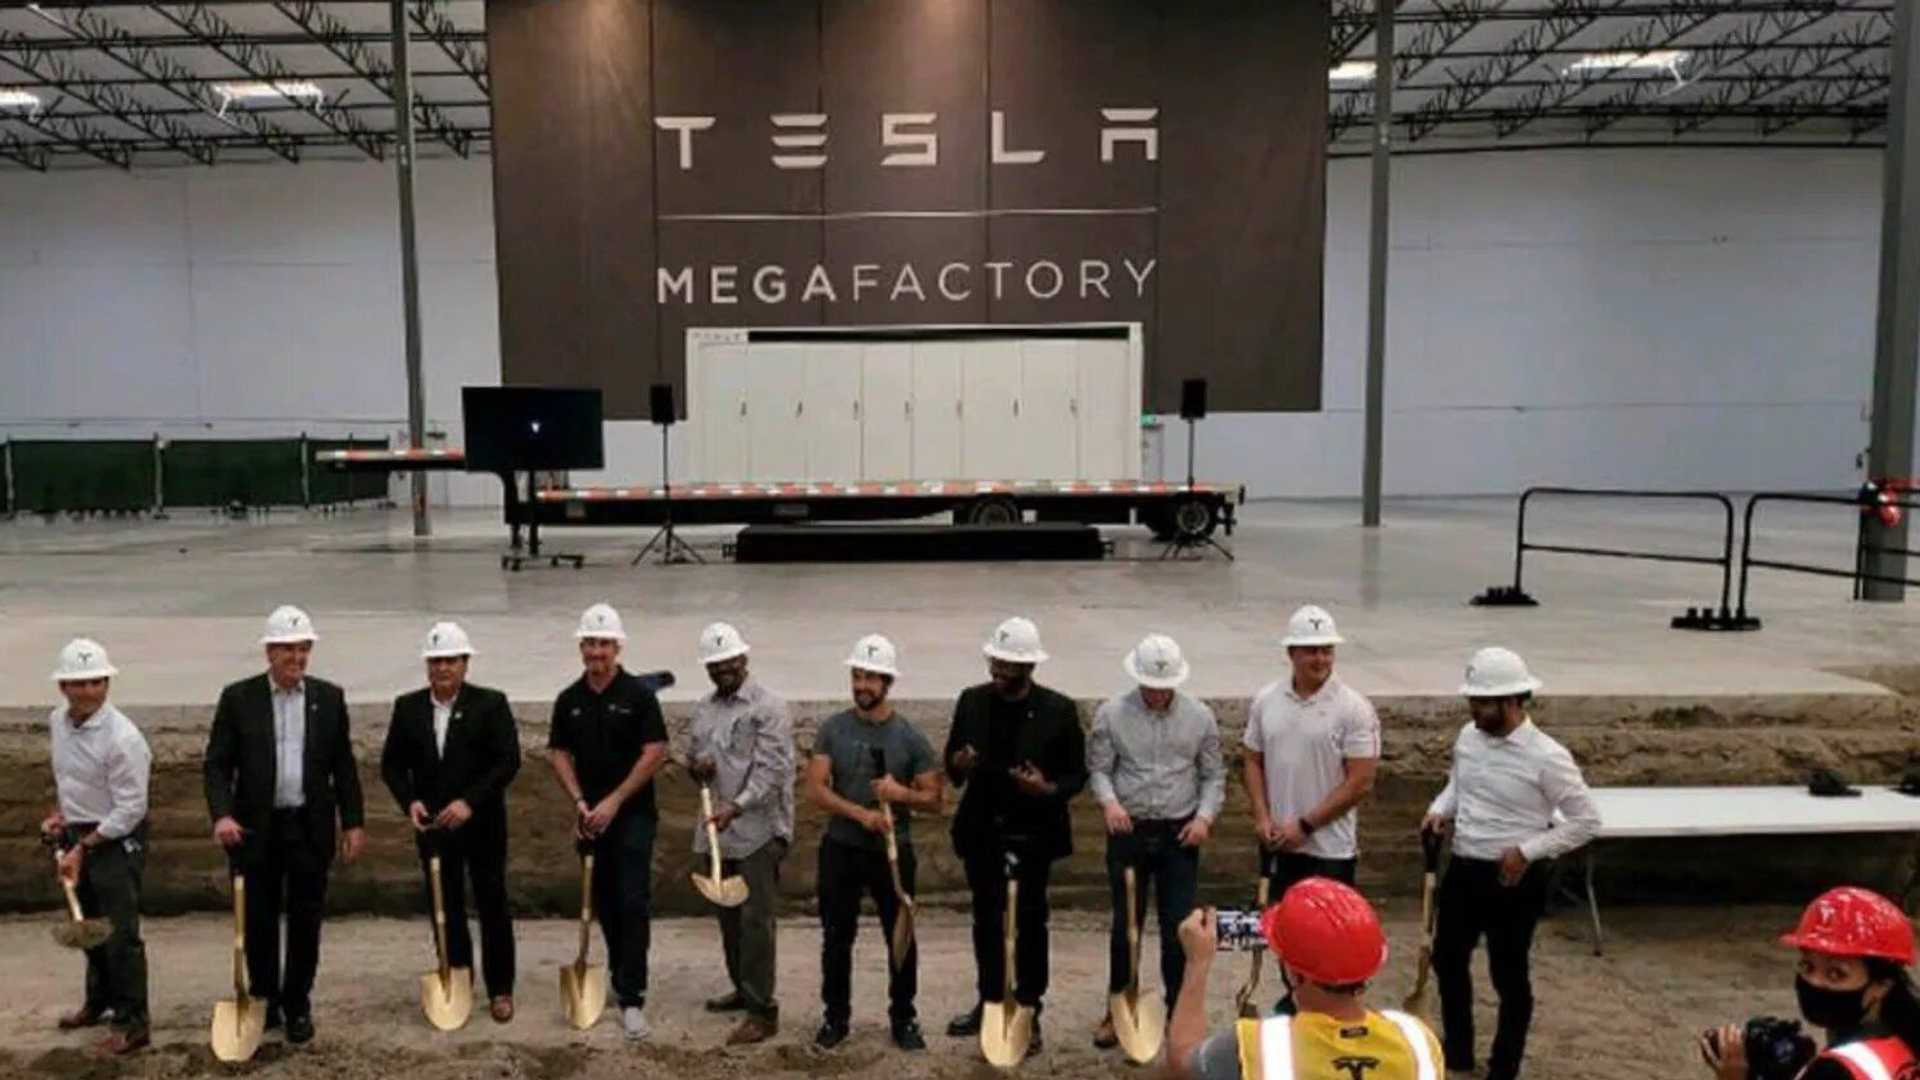 Tesla has broken ground on a new factory located in Lathrop, California. The facility will exclusively produce Megapacks - Tesla's largest battery u